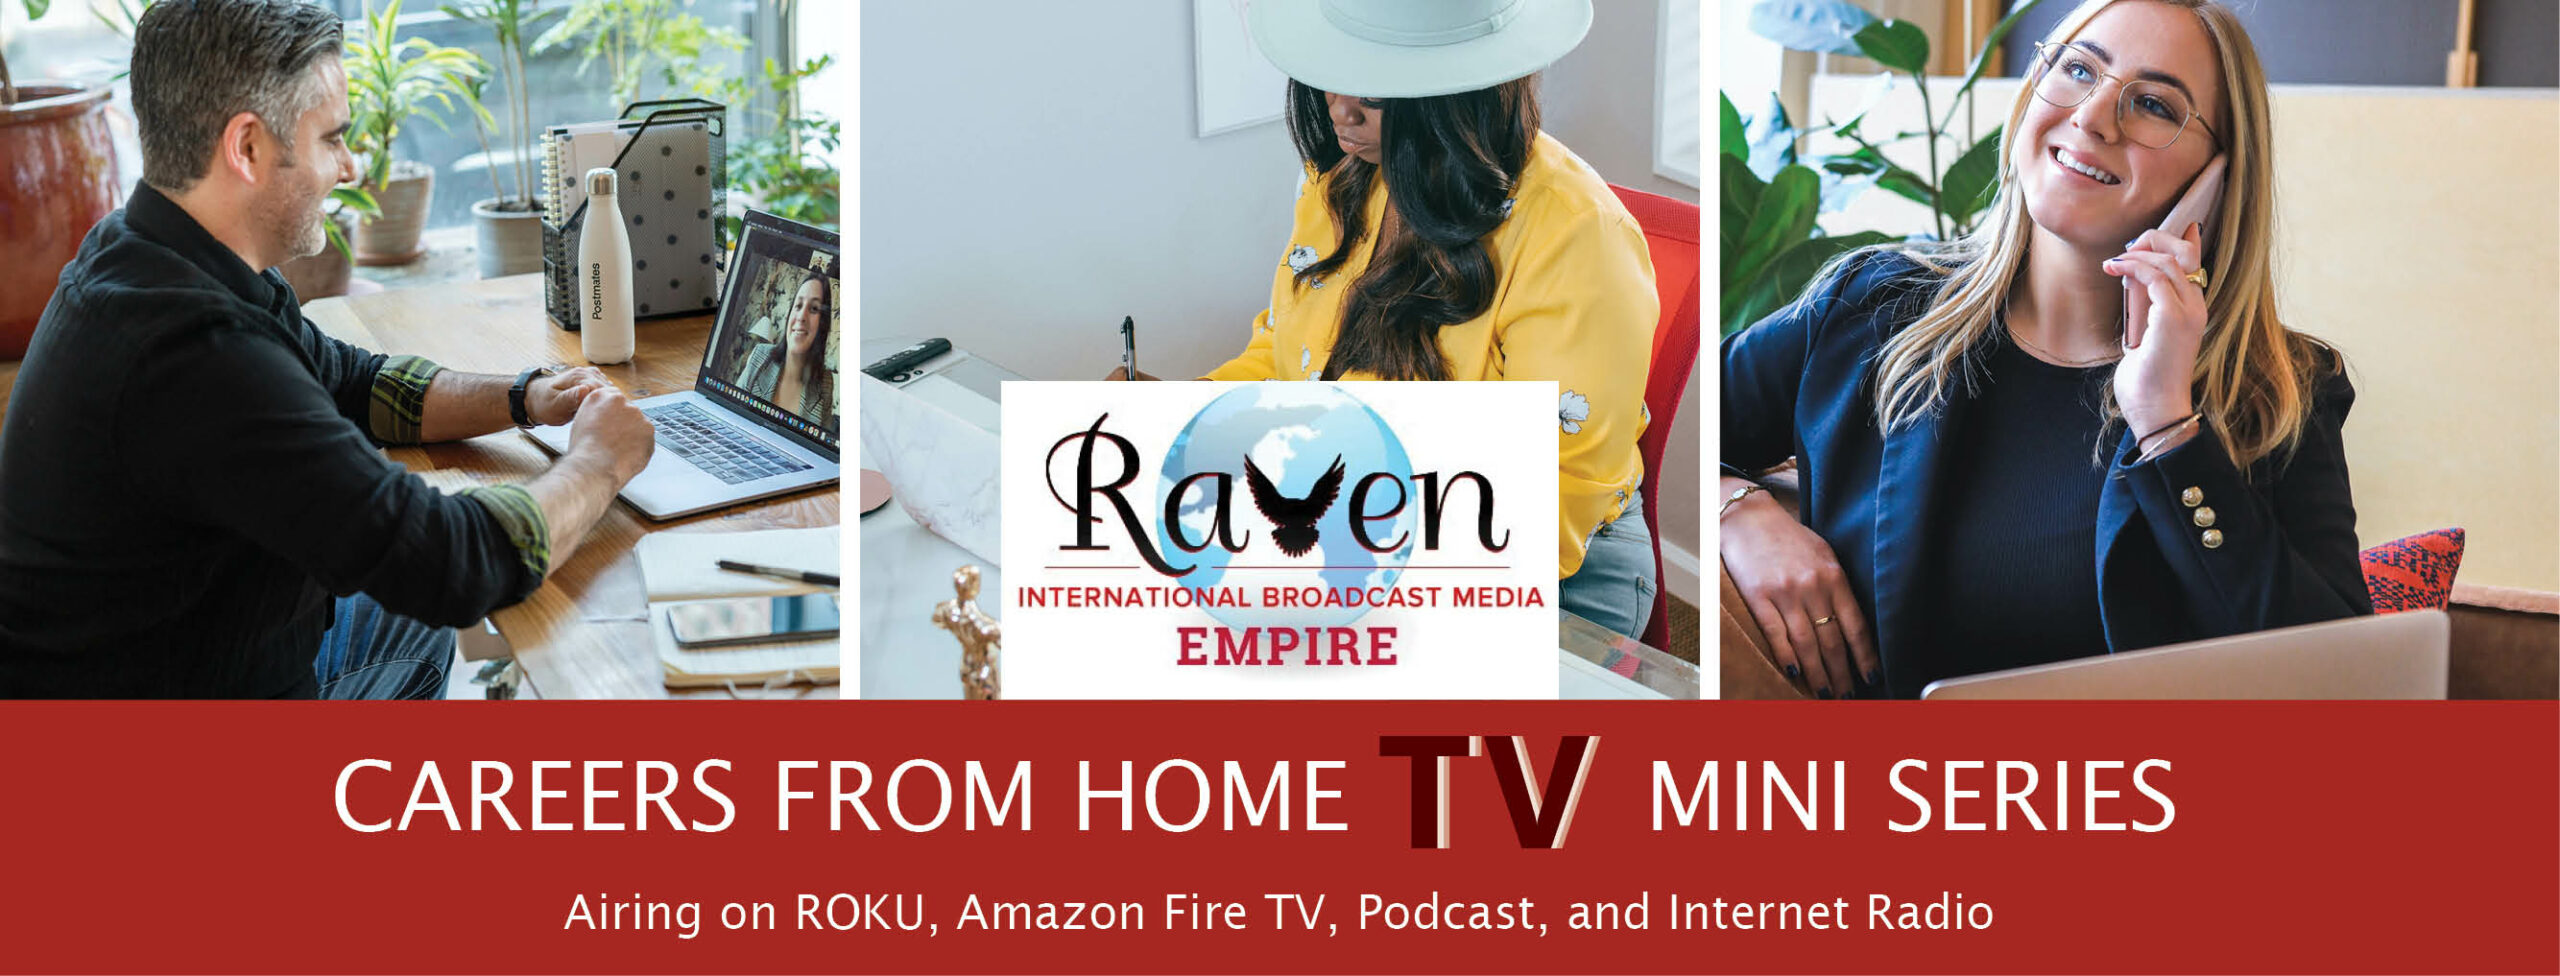 Careers From Home TV Mini Series Opportunity for Influencers